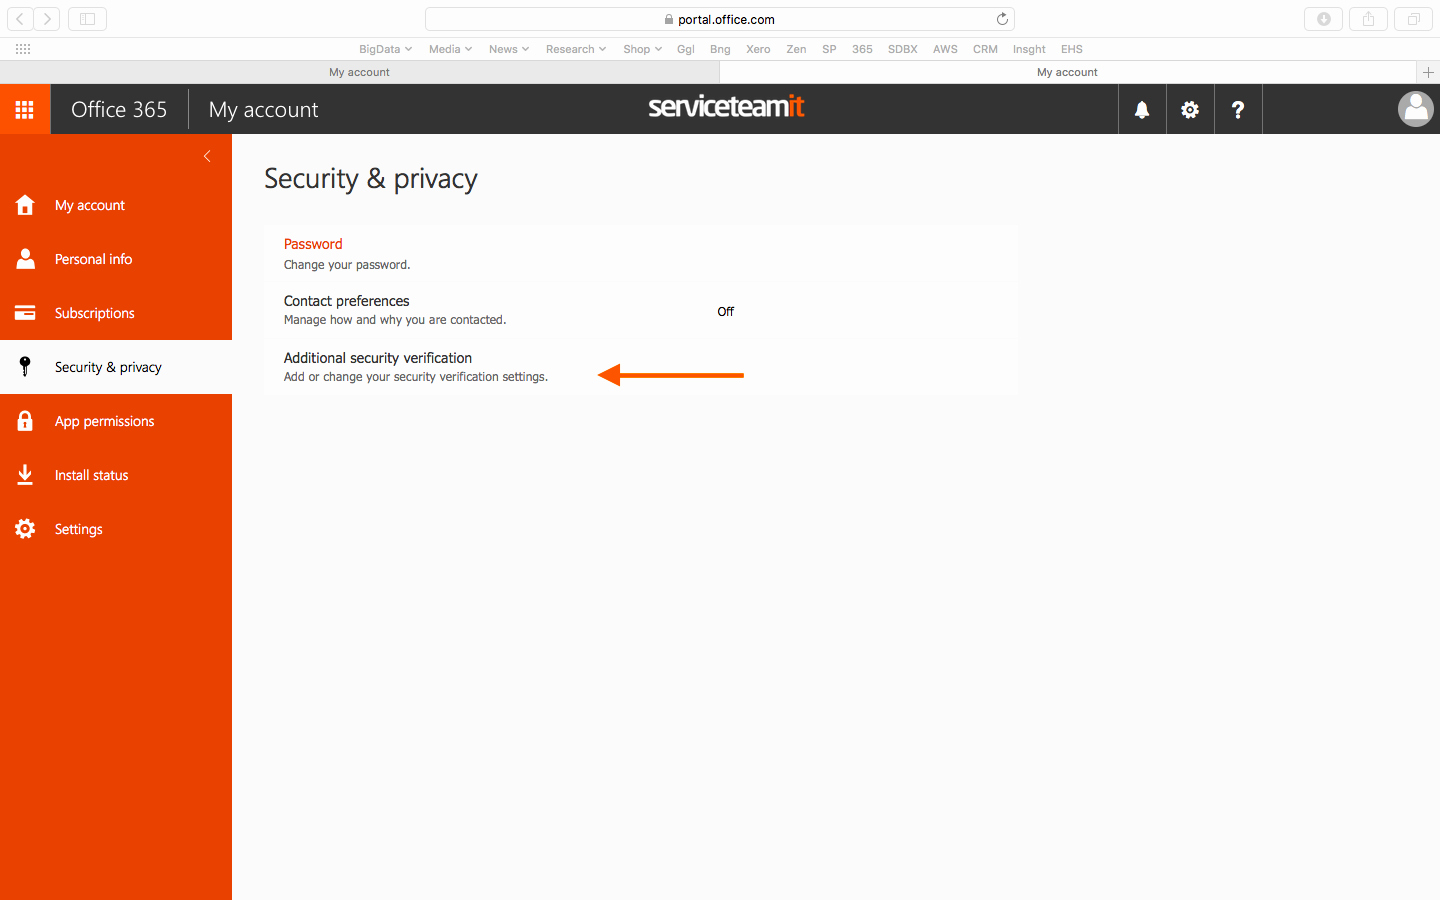 Portal-office-com Best Of Fice 365 App Password with Mfa Howto